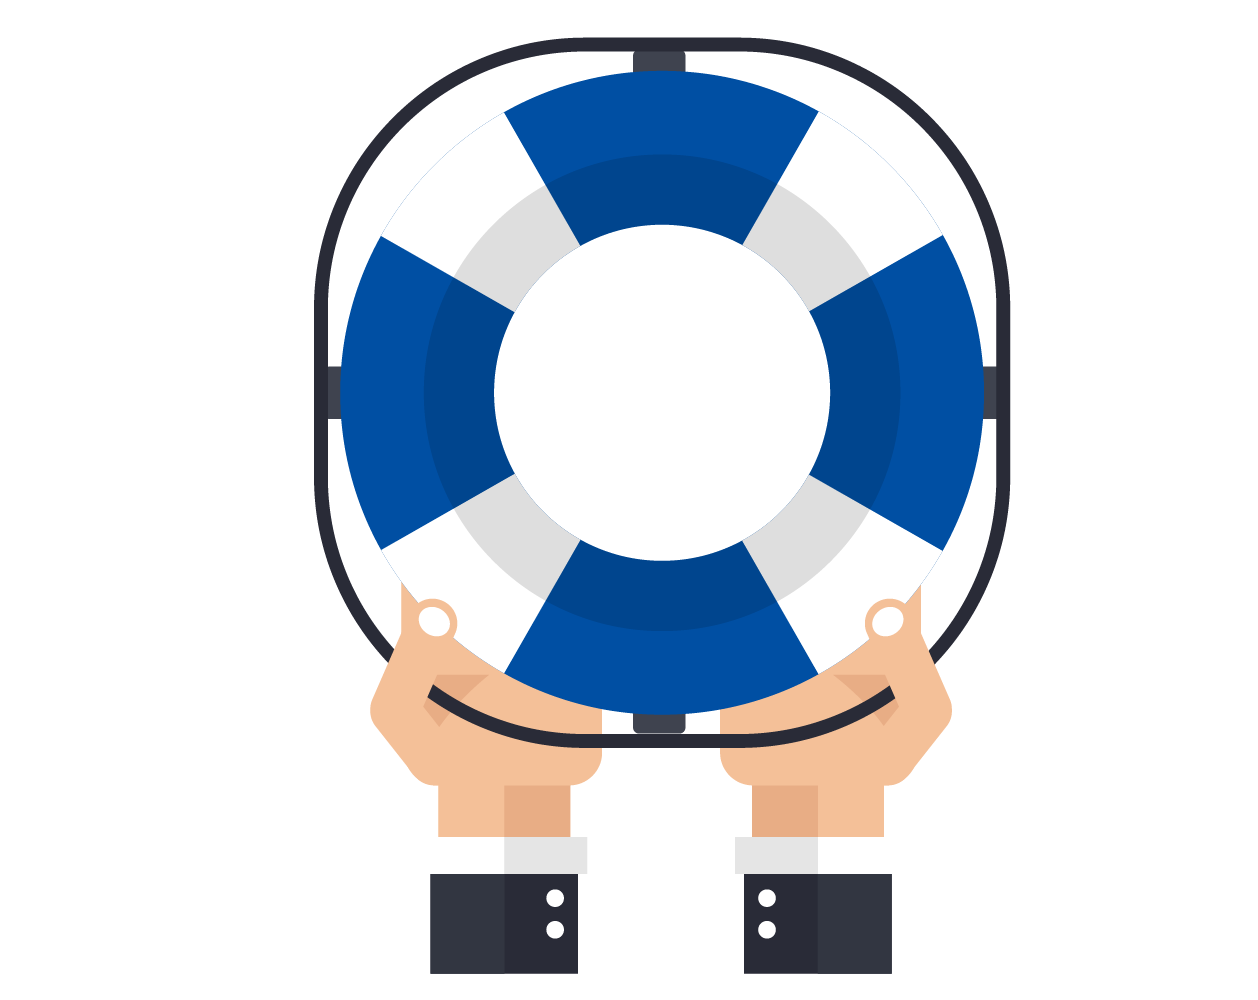 icon - hands hold a blue and white life preserver